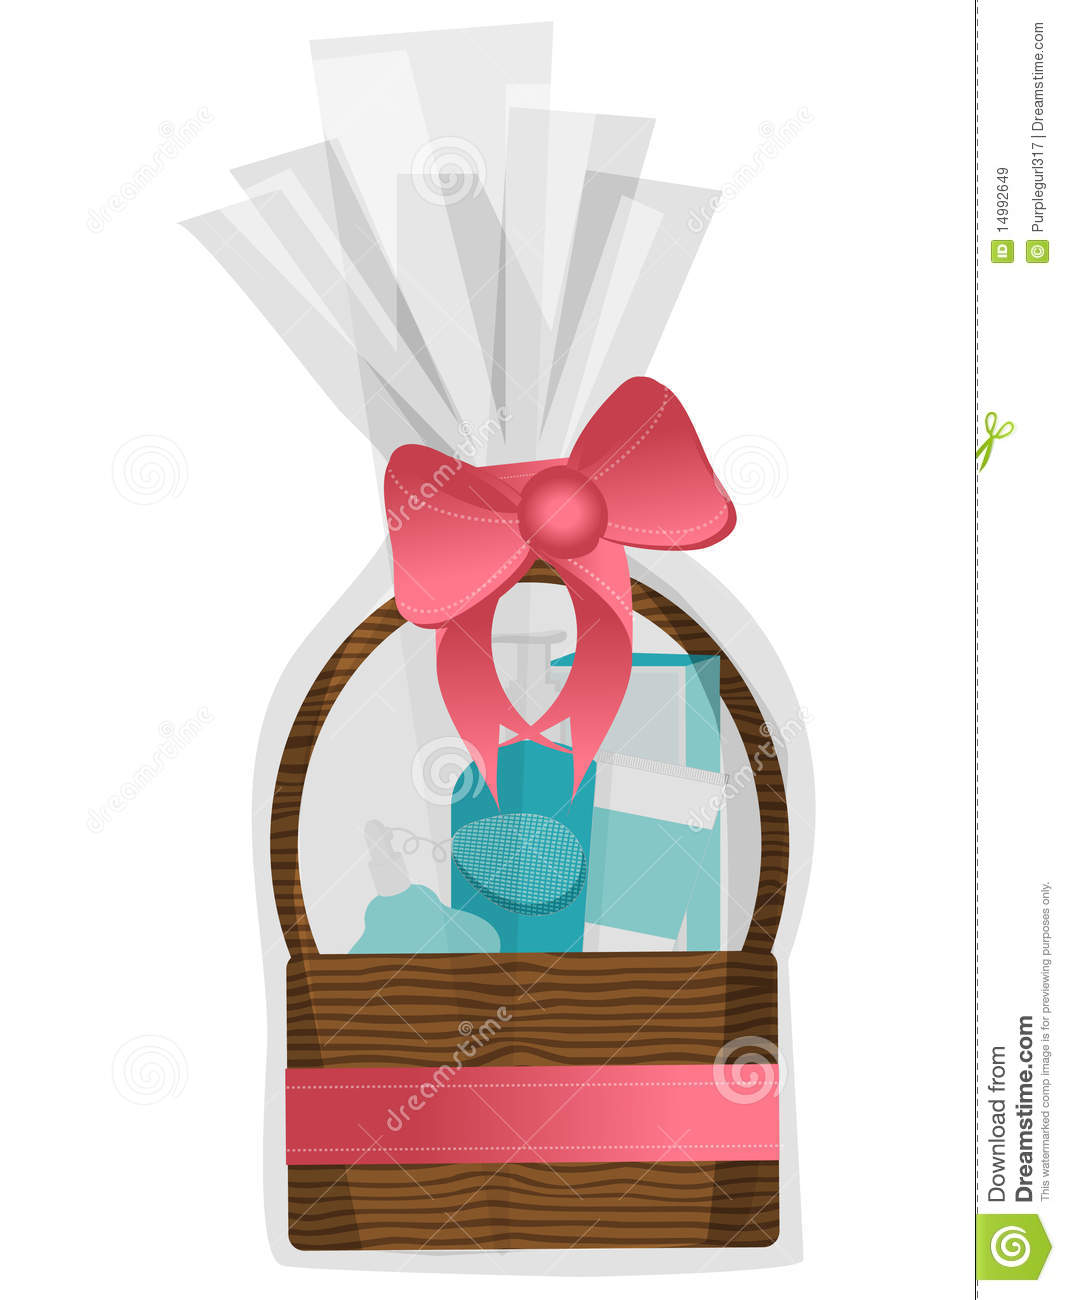 Free Gift Baskets Cliparts, Download Free Clip Art, Free Clip Art on Clipart  Library